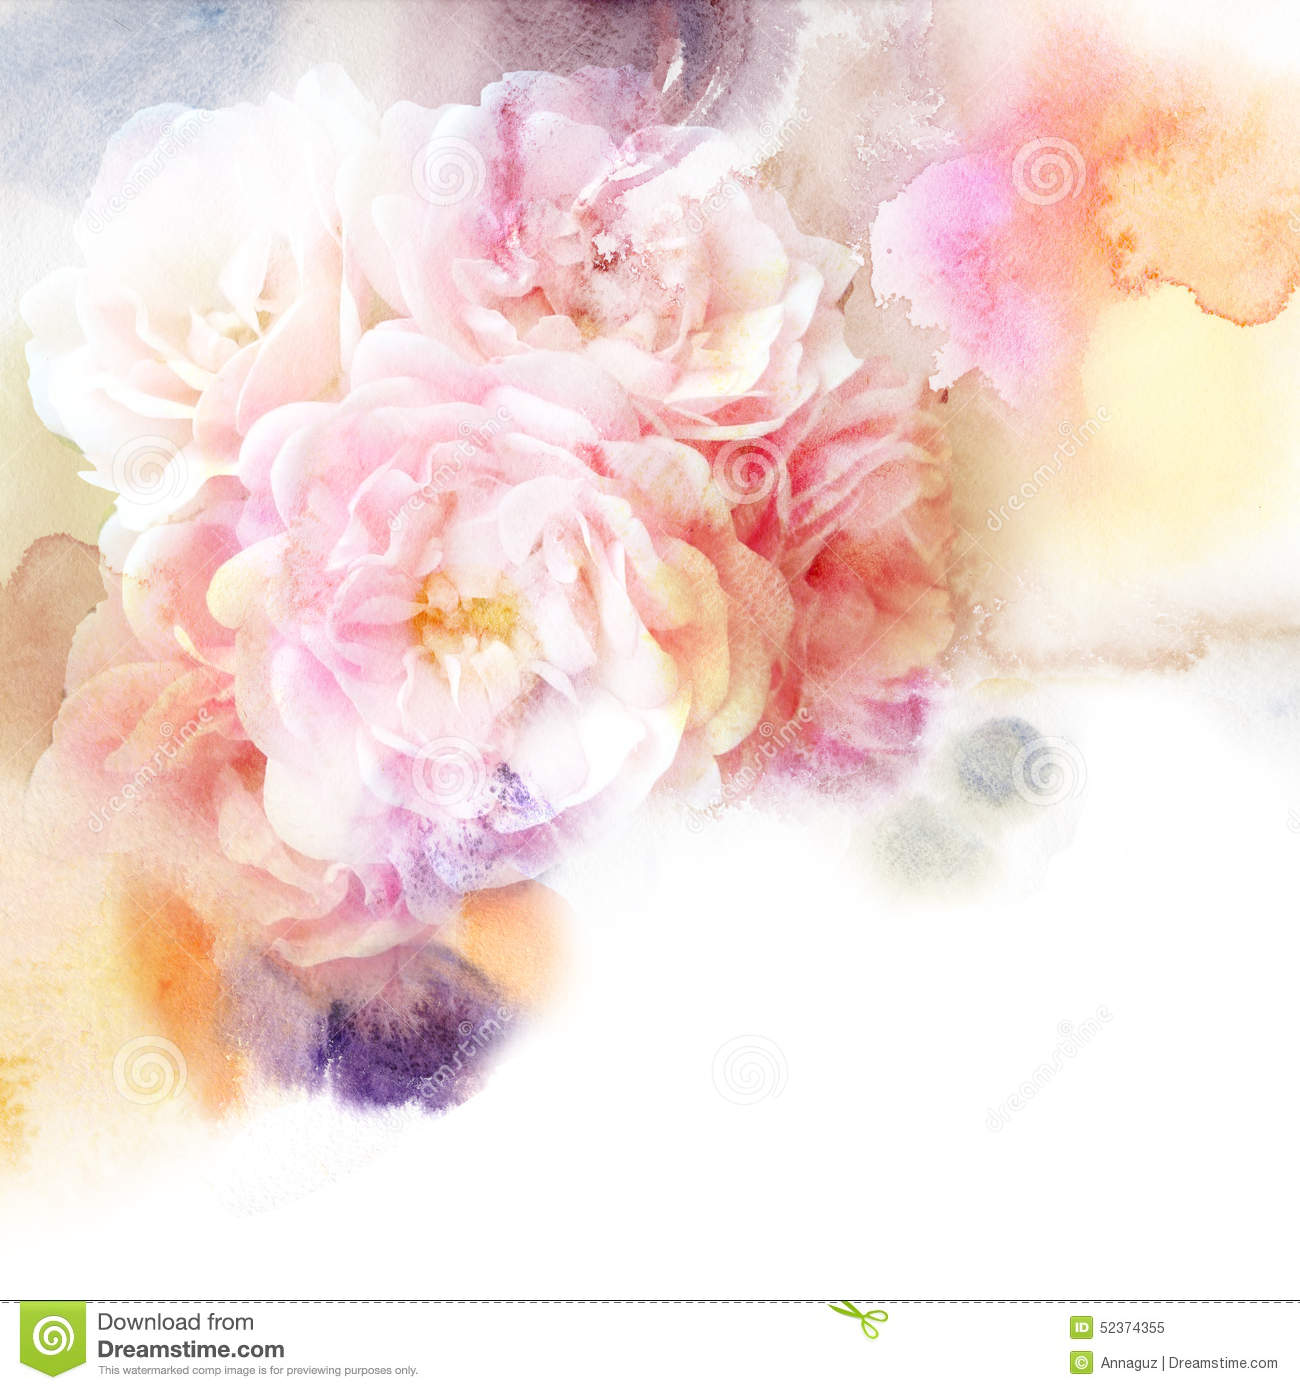 Peonies Wallpaper Iphone 6 Floral Watercolor Background With Beautiful Flowers Stock